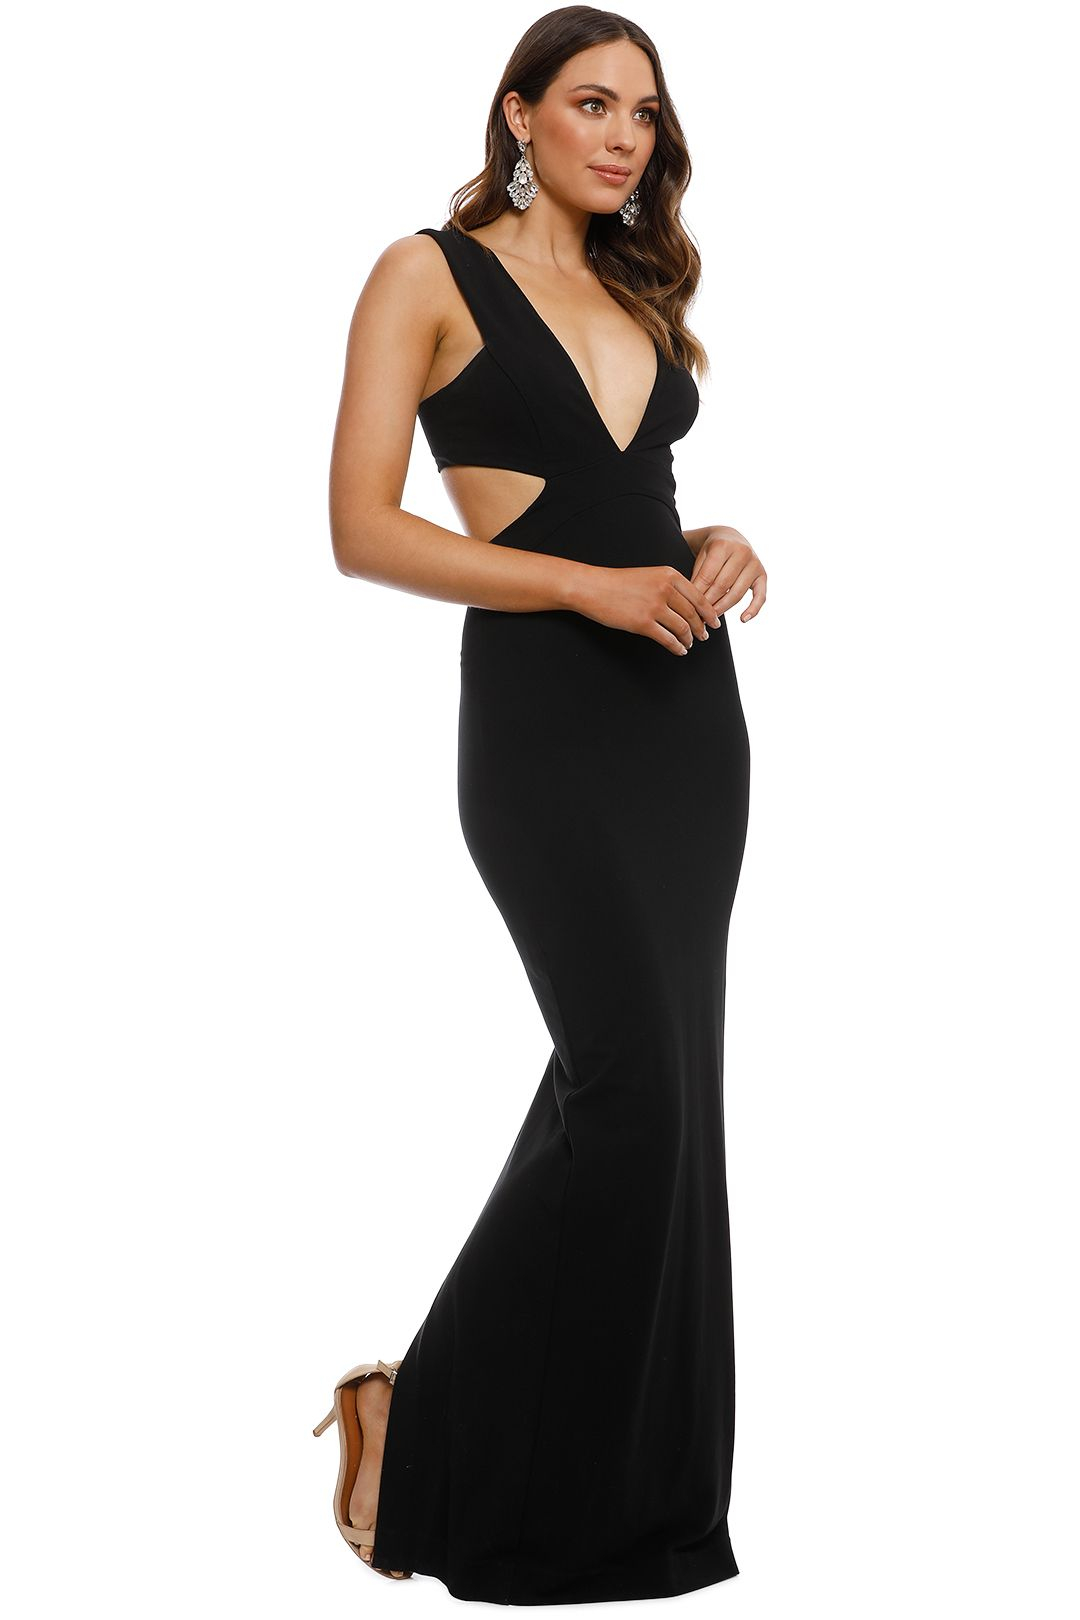 Nicole Miller - Carlessa Cut Out Gown - Black - Side